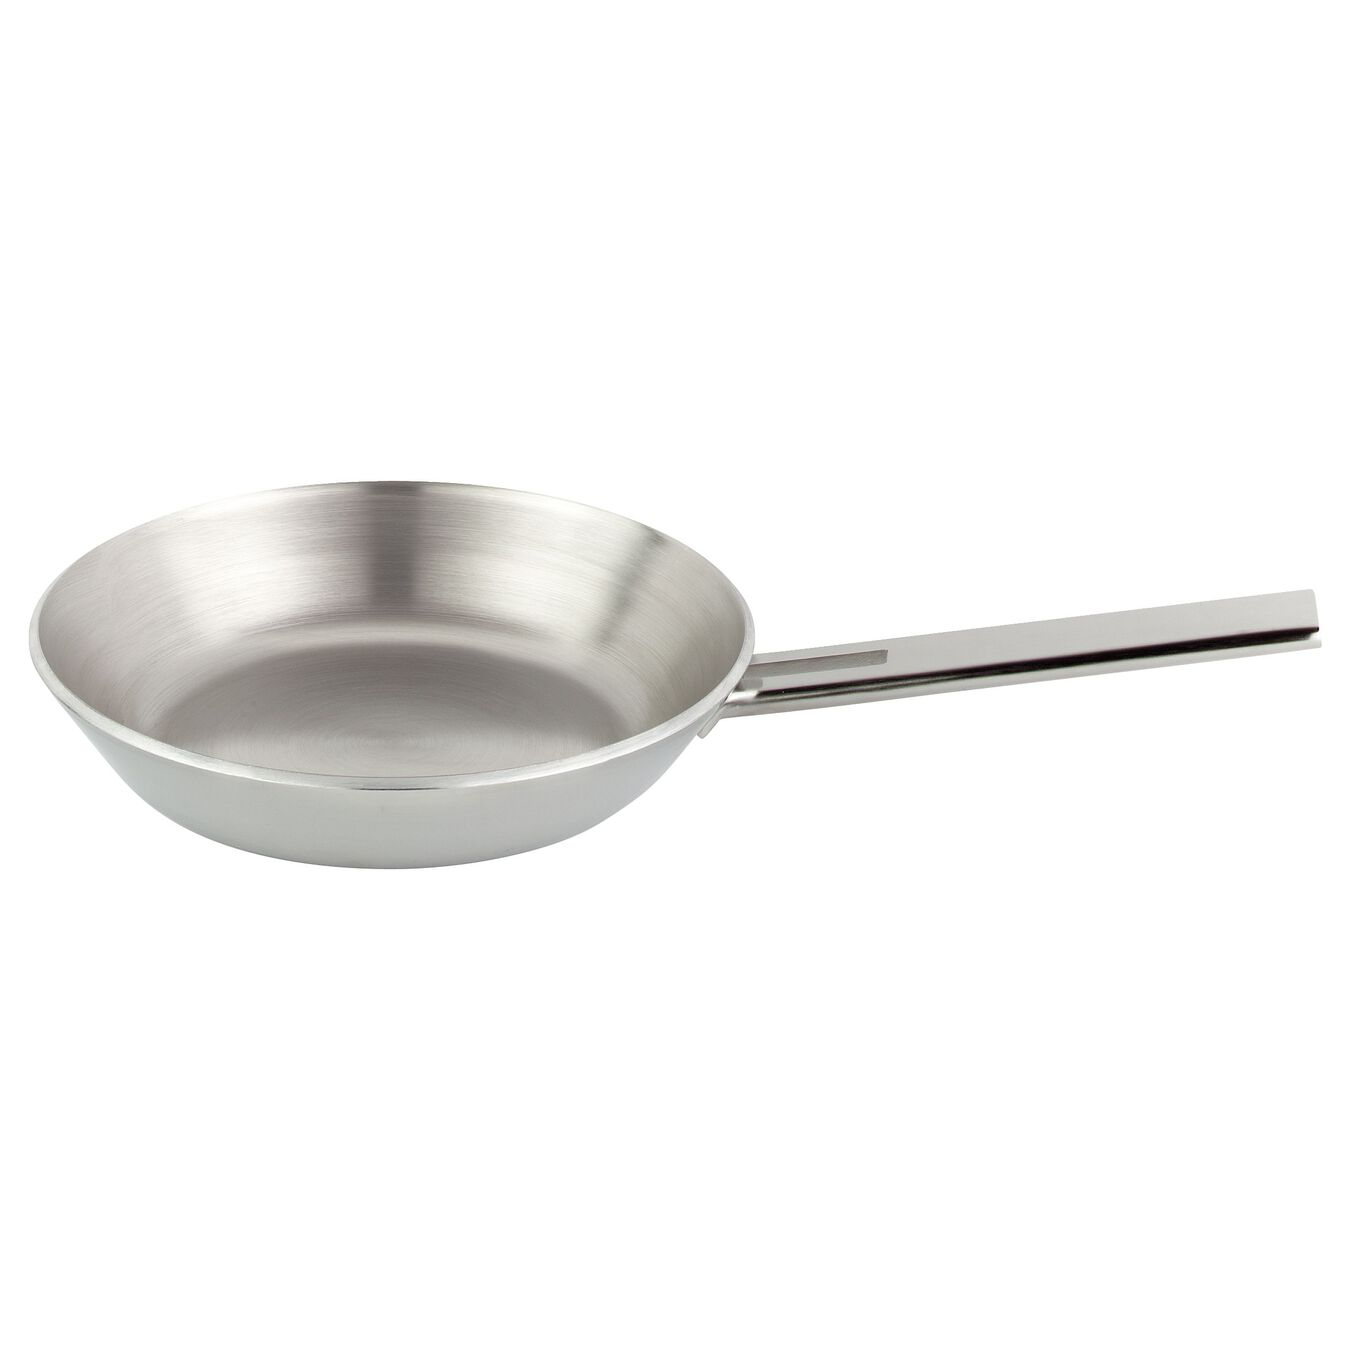 11-inch Stainless Steel Fry Pan,,large 1